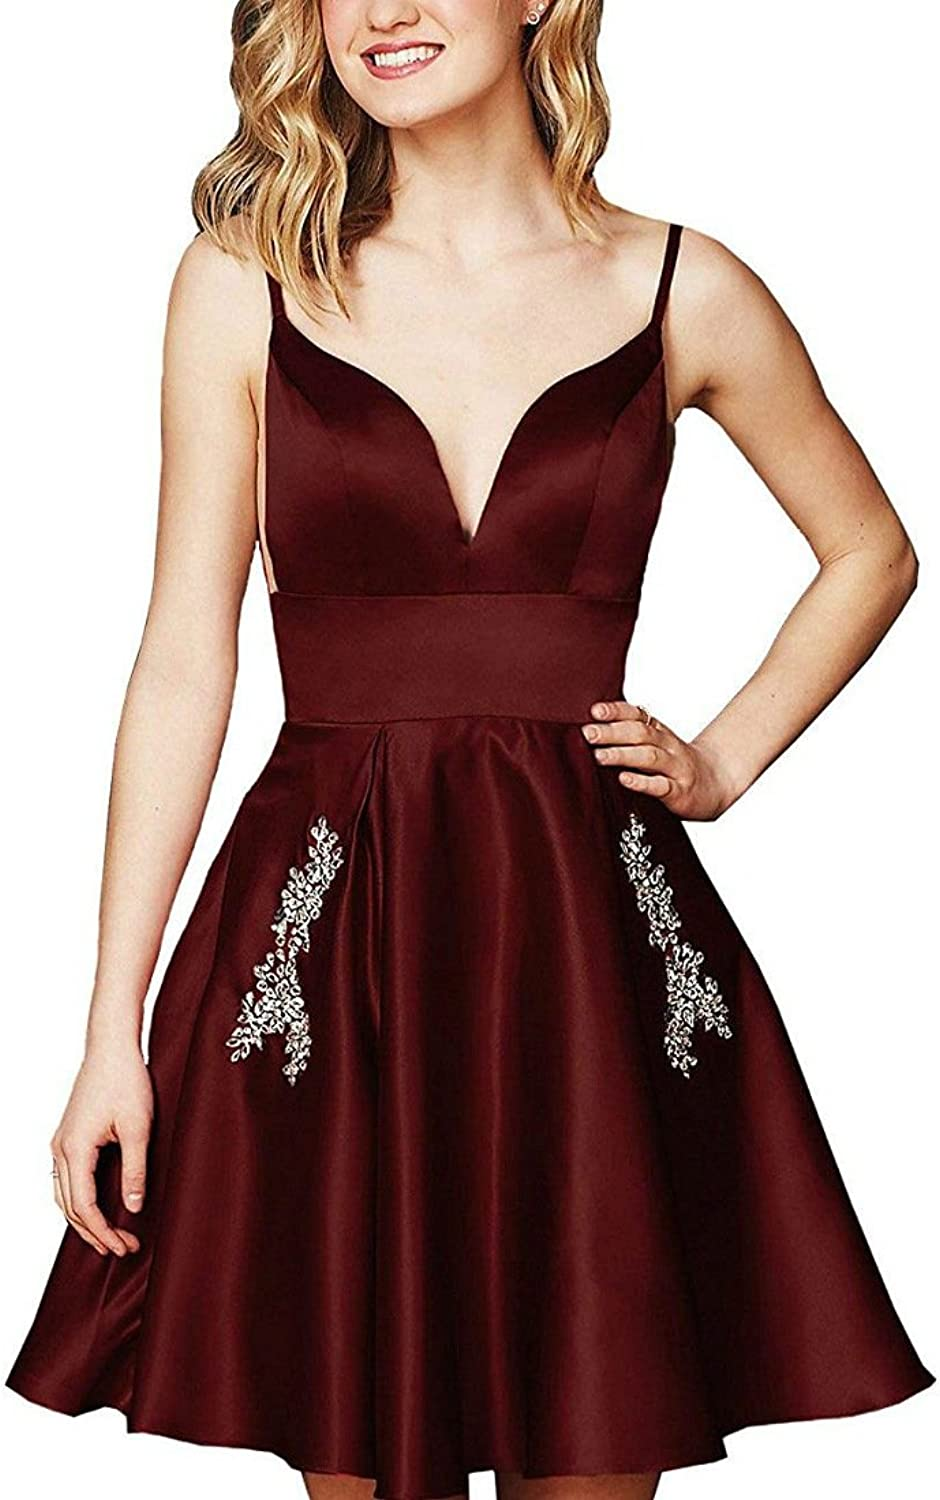 VNeck Spaghetti Strap Homecoming Dresses with Beaded Pockets Short Prom Dresses